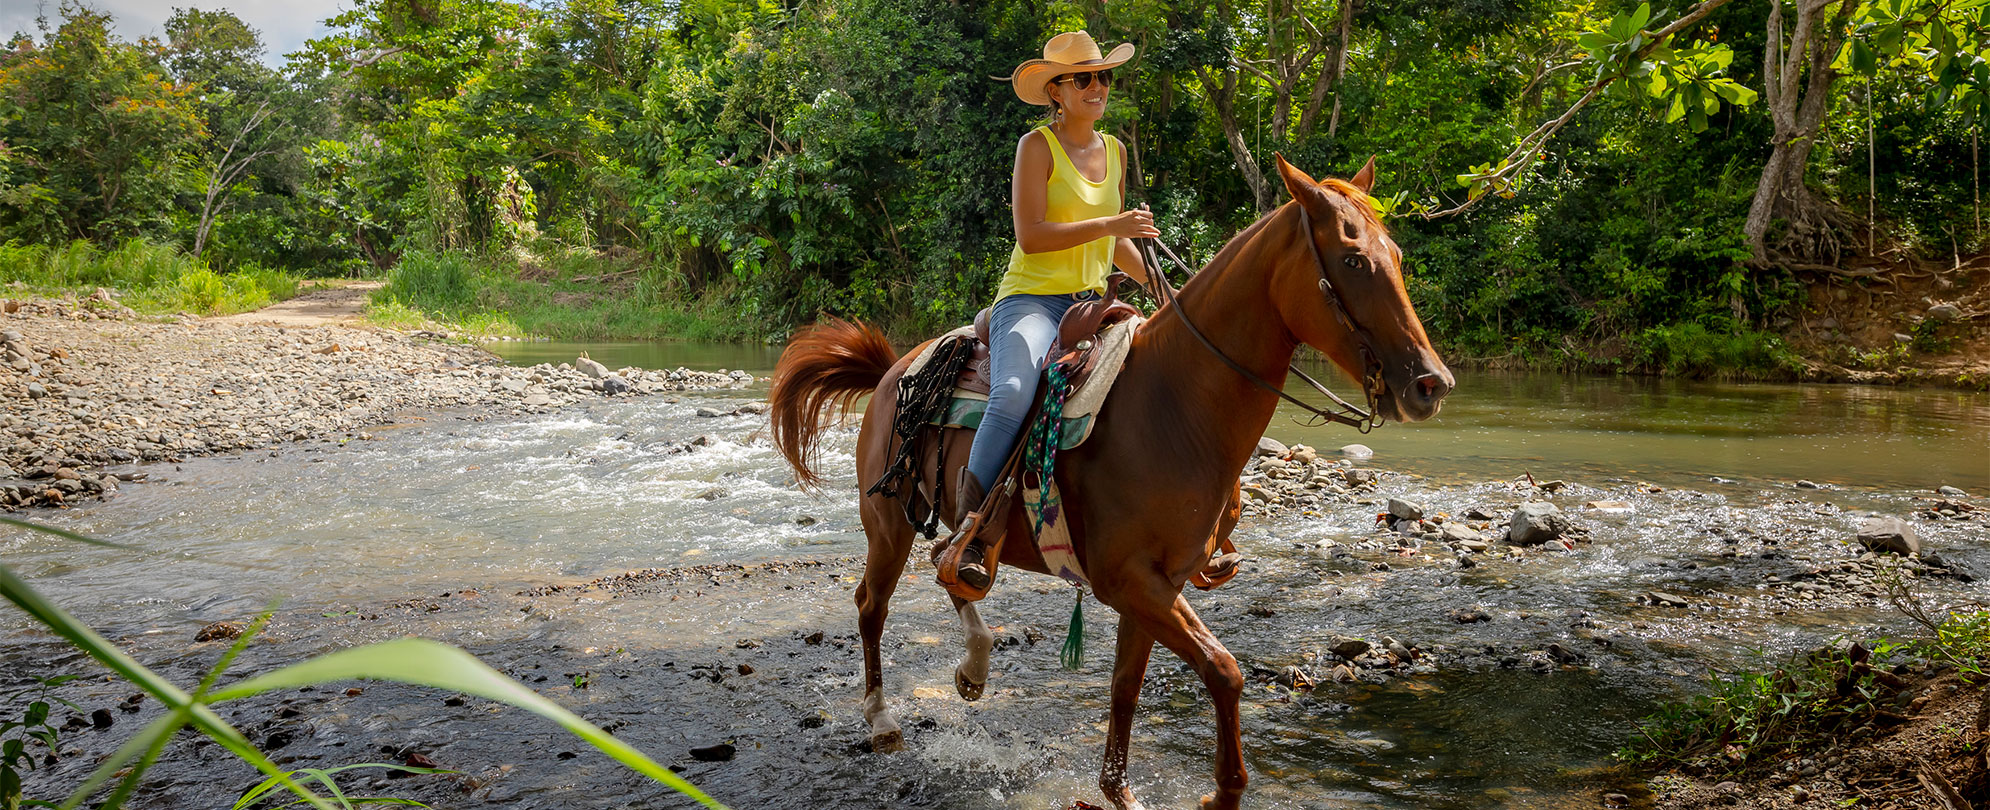 Woman wearing a yellow tank top and a wide-brimmed hat riding a horse through a rocky river.